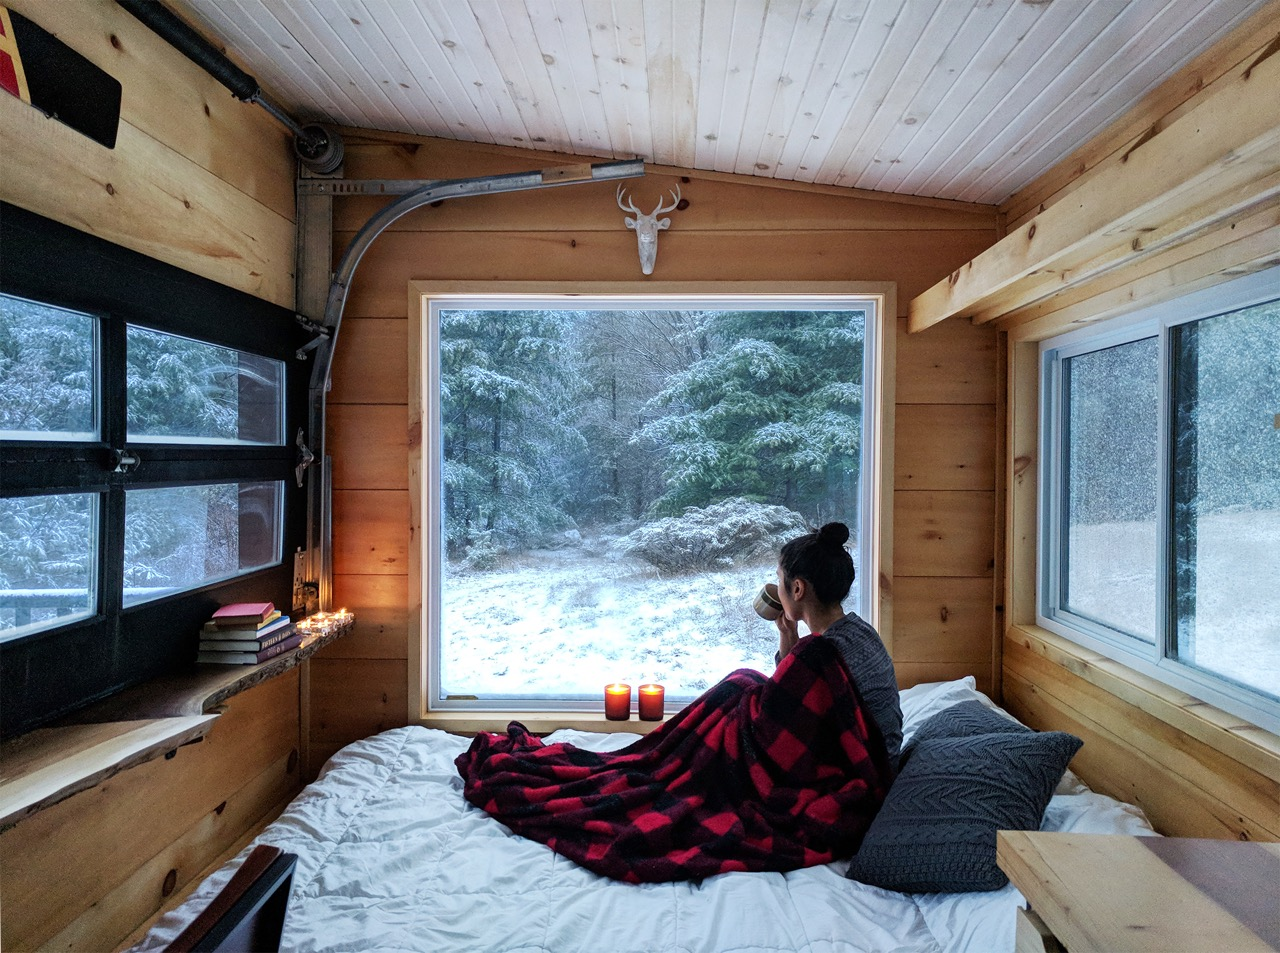 Cabinscape: A Tiny Cabin Getaway